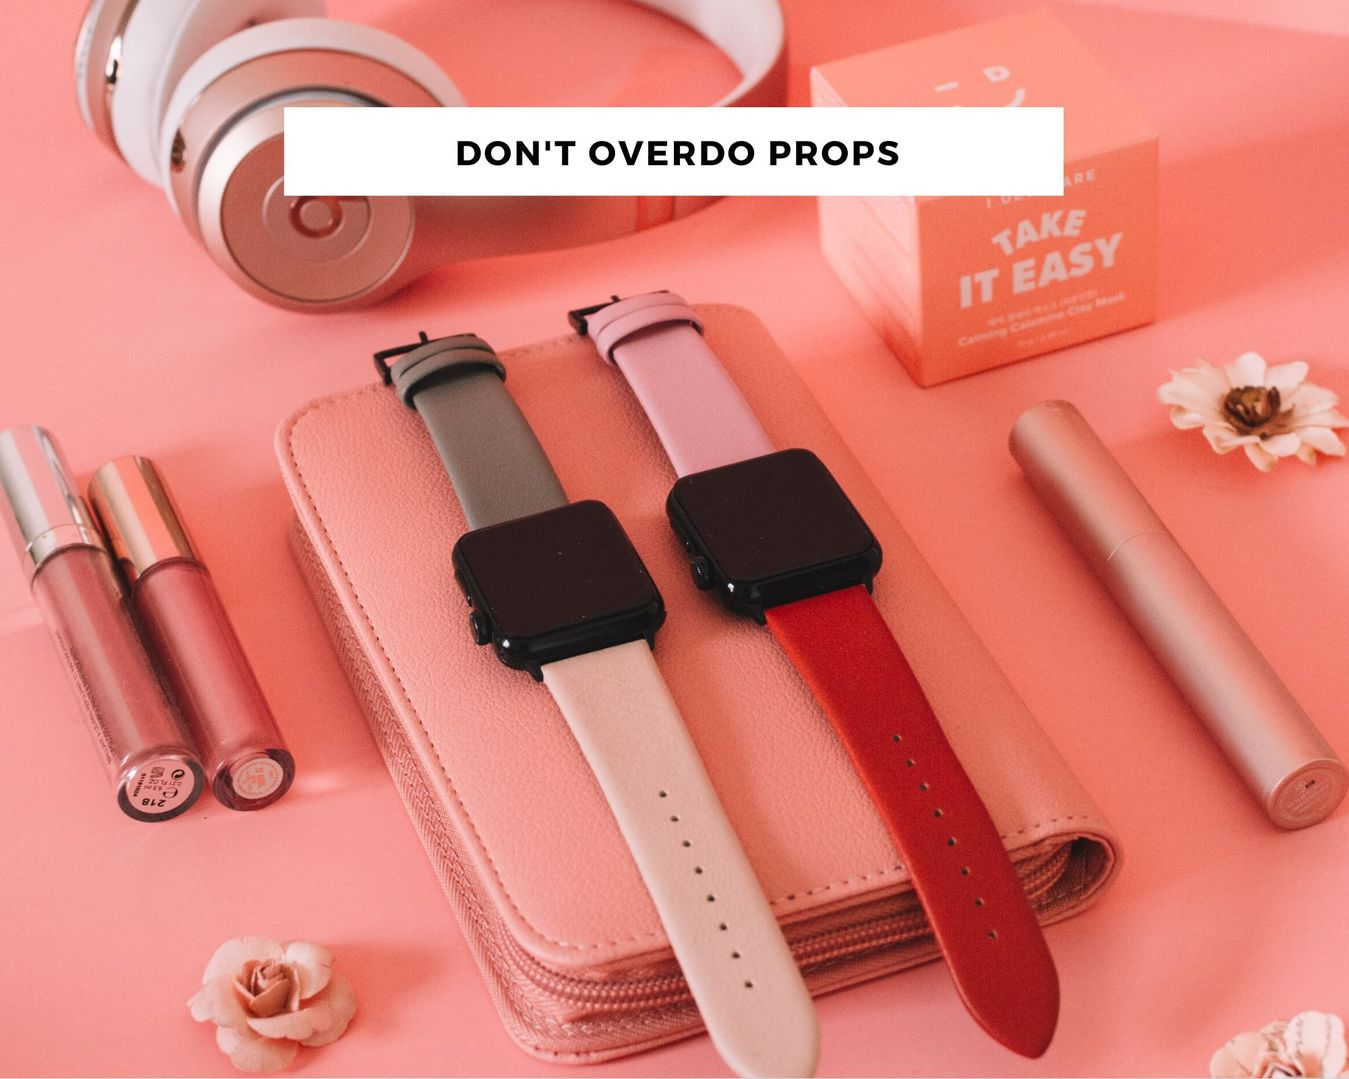 Too many props in a photo example with makeup and electronics